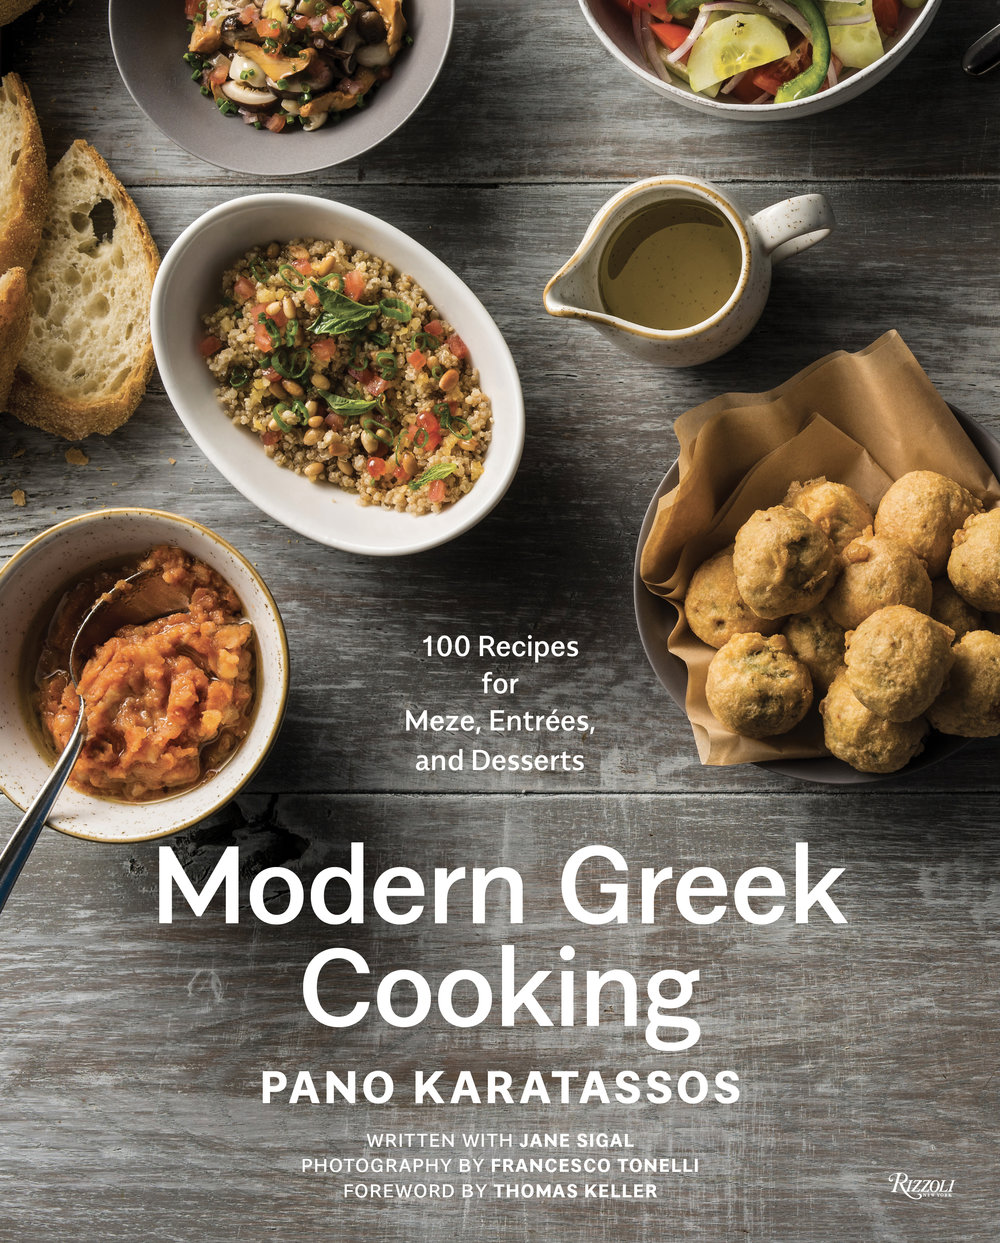 ModernGreekCooking_cover.jpg